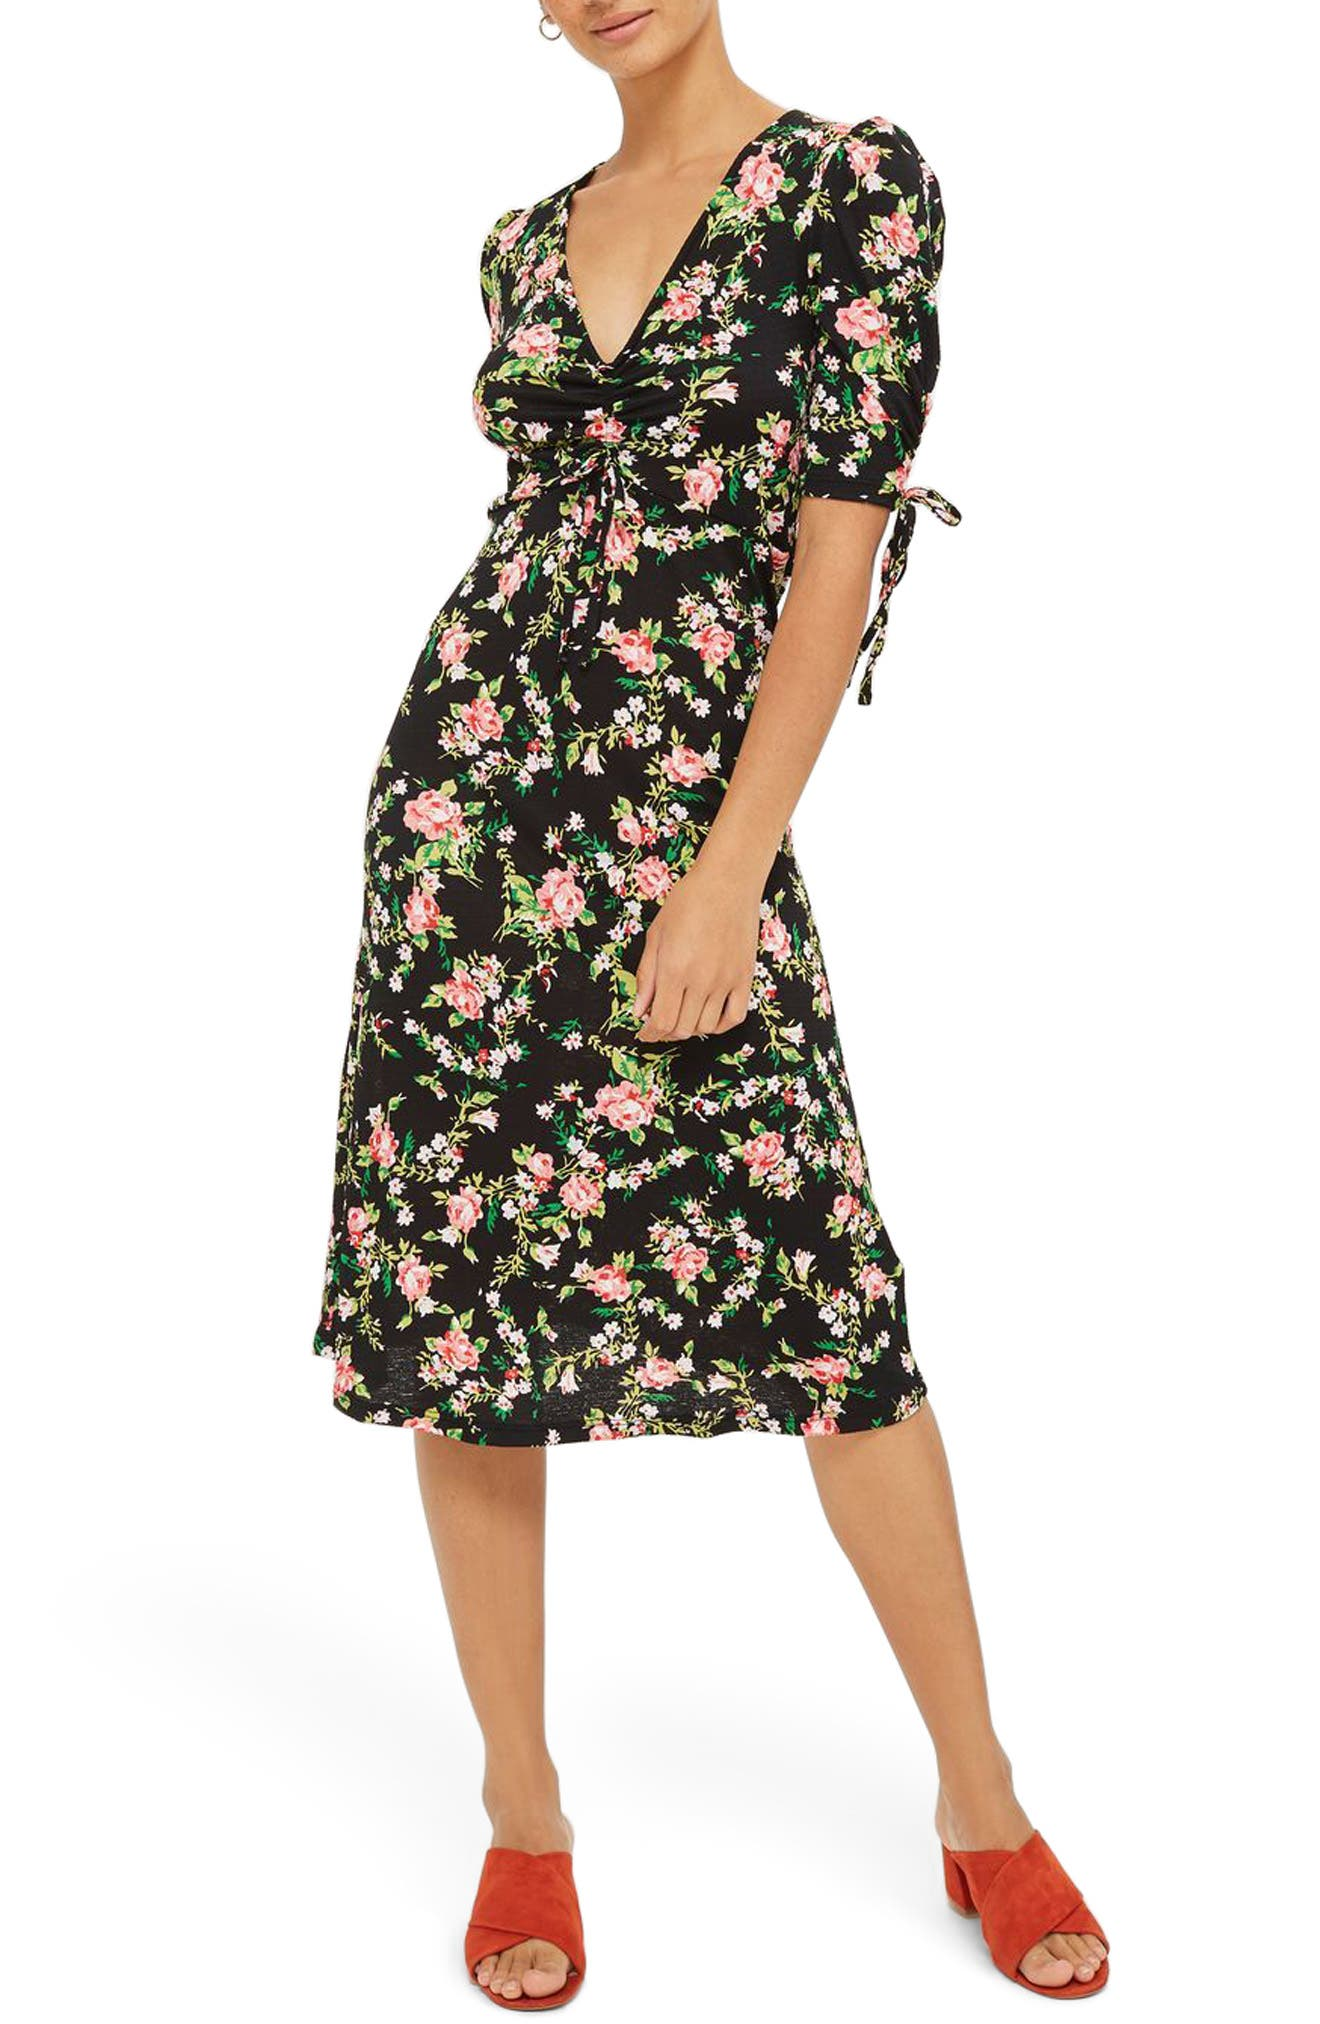 Topshop Floral Ruched Midi Dress